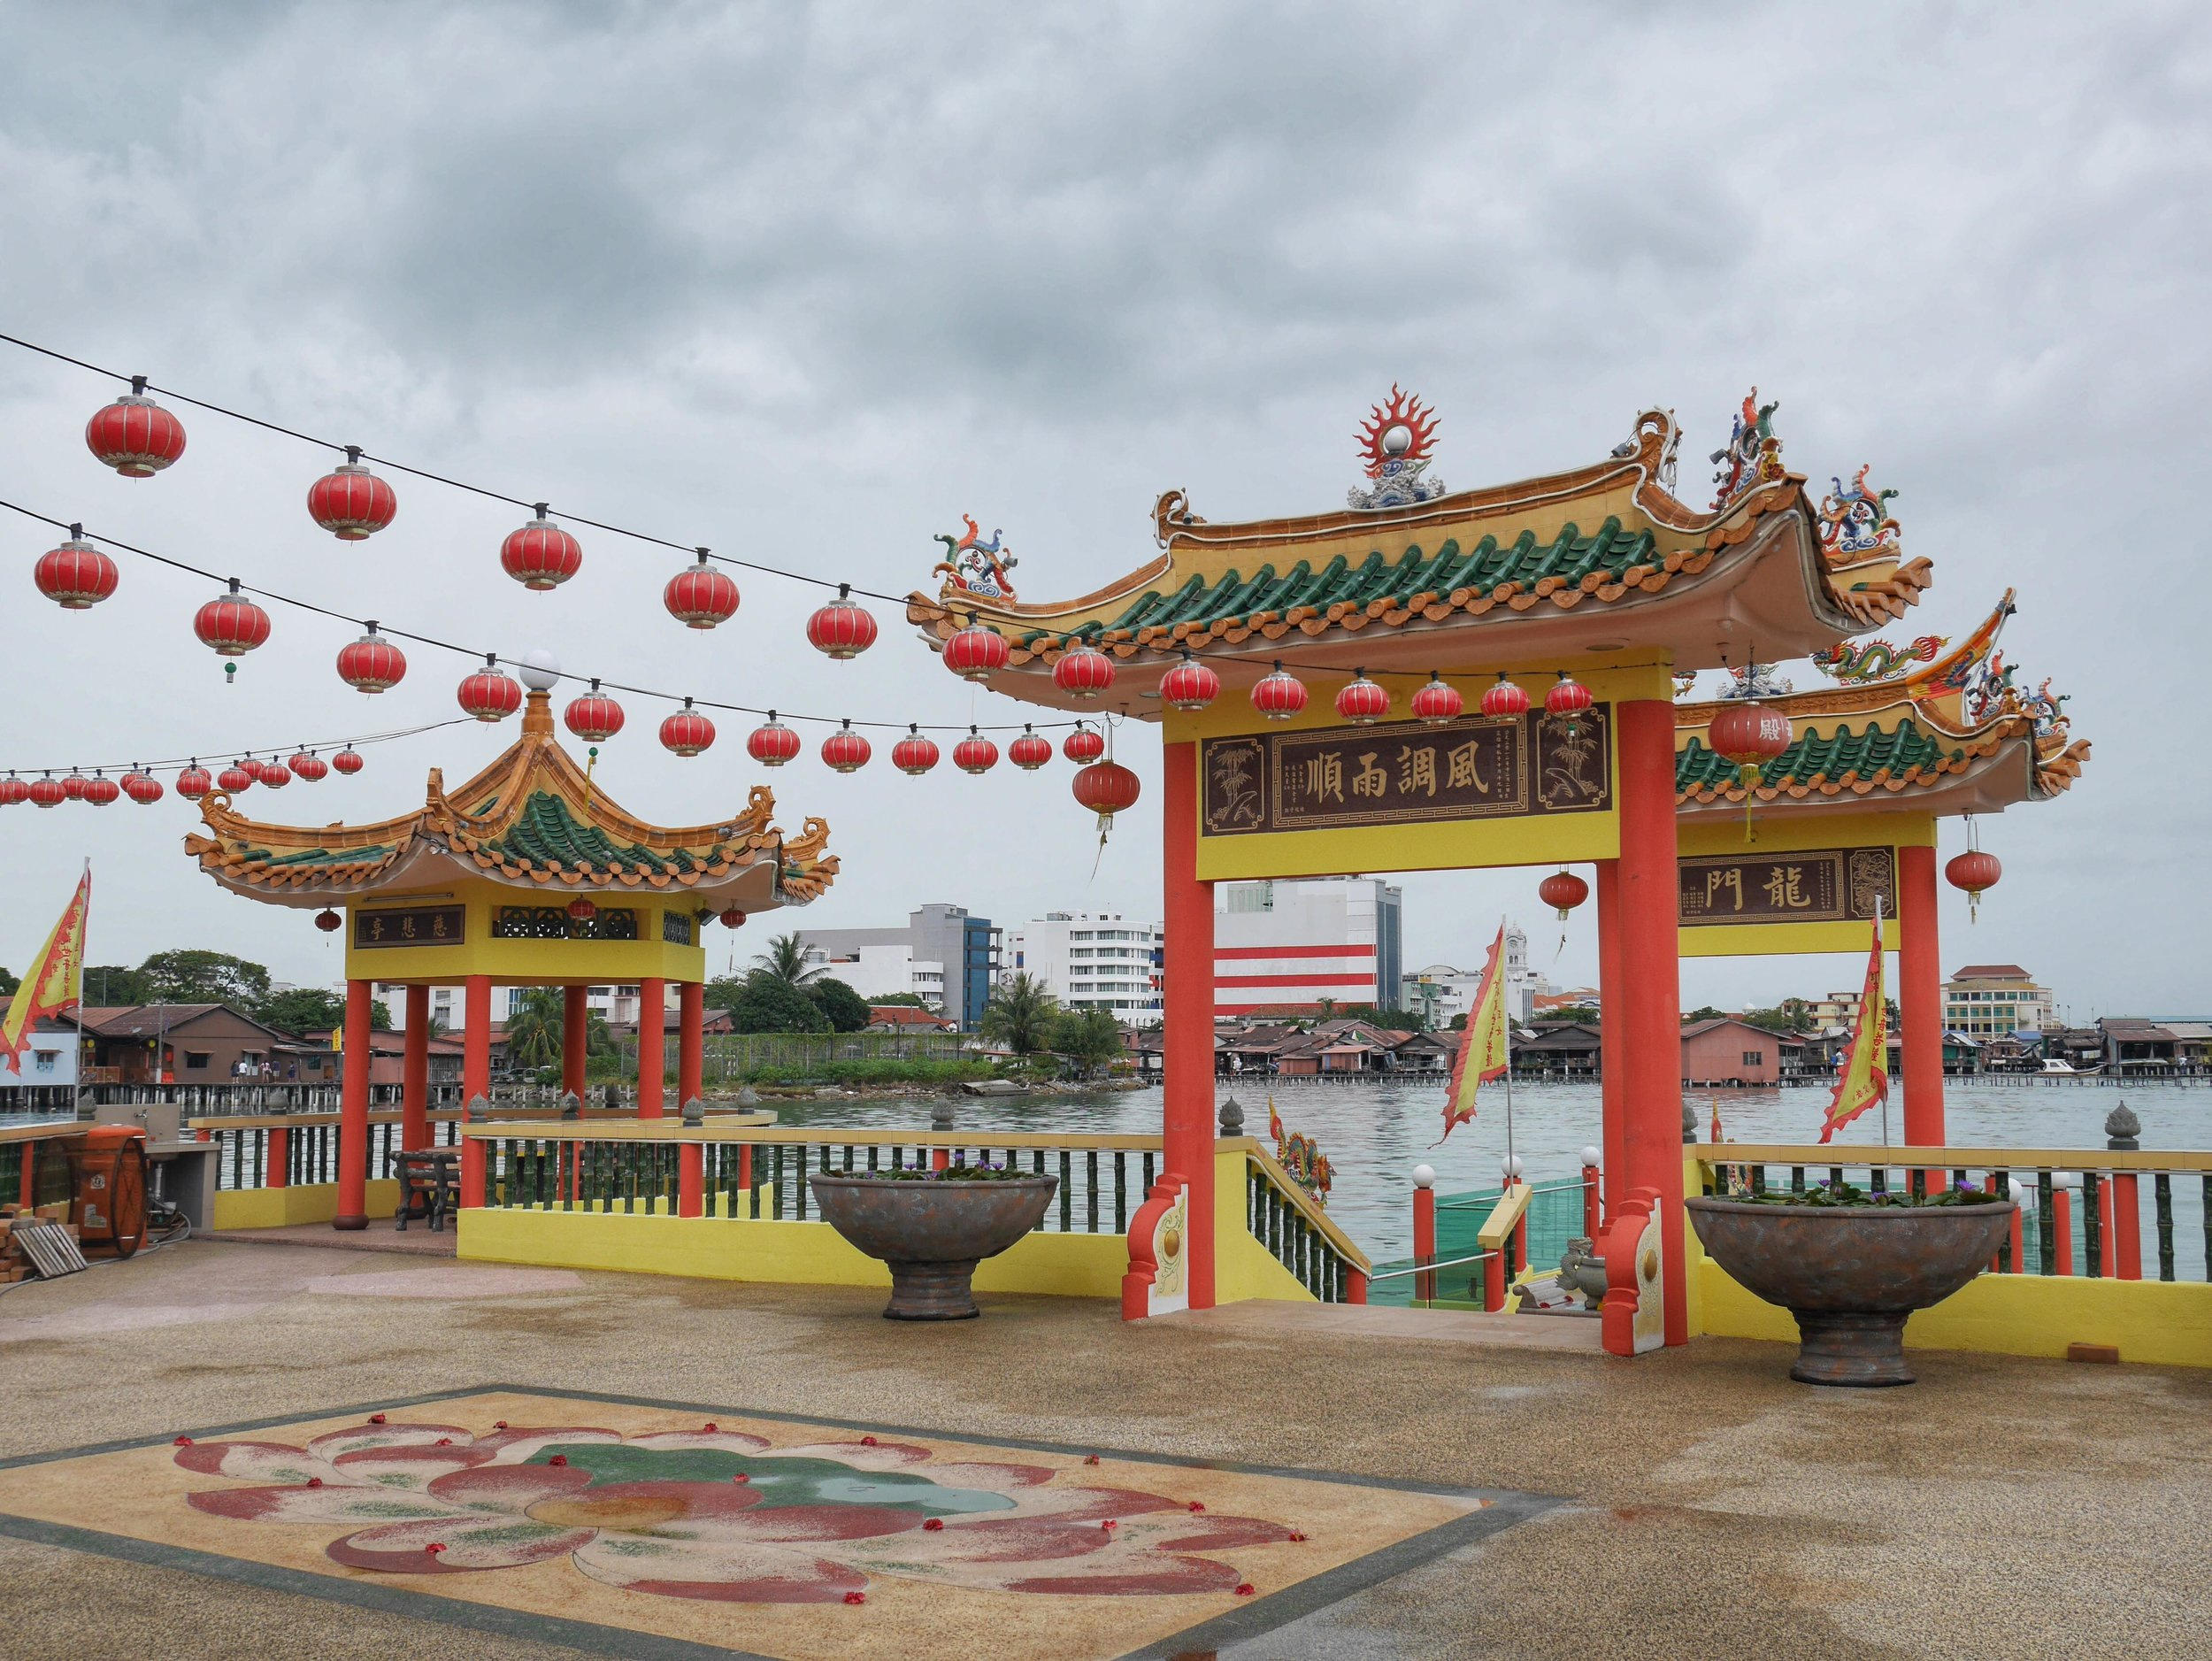 Hean Boo Thean Buddhist Temple is one of the many religious sites in Penang